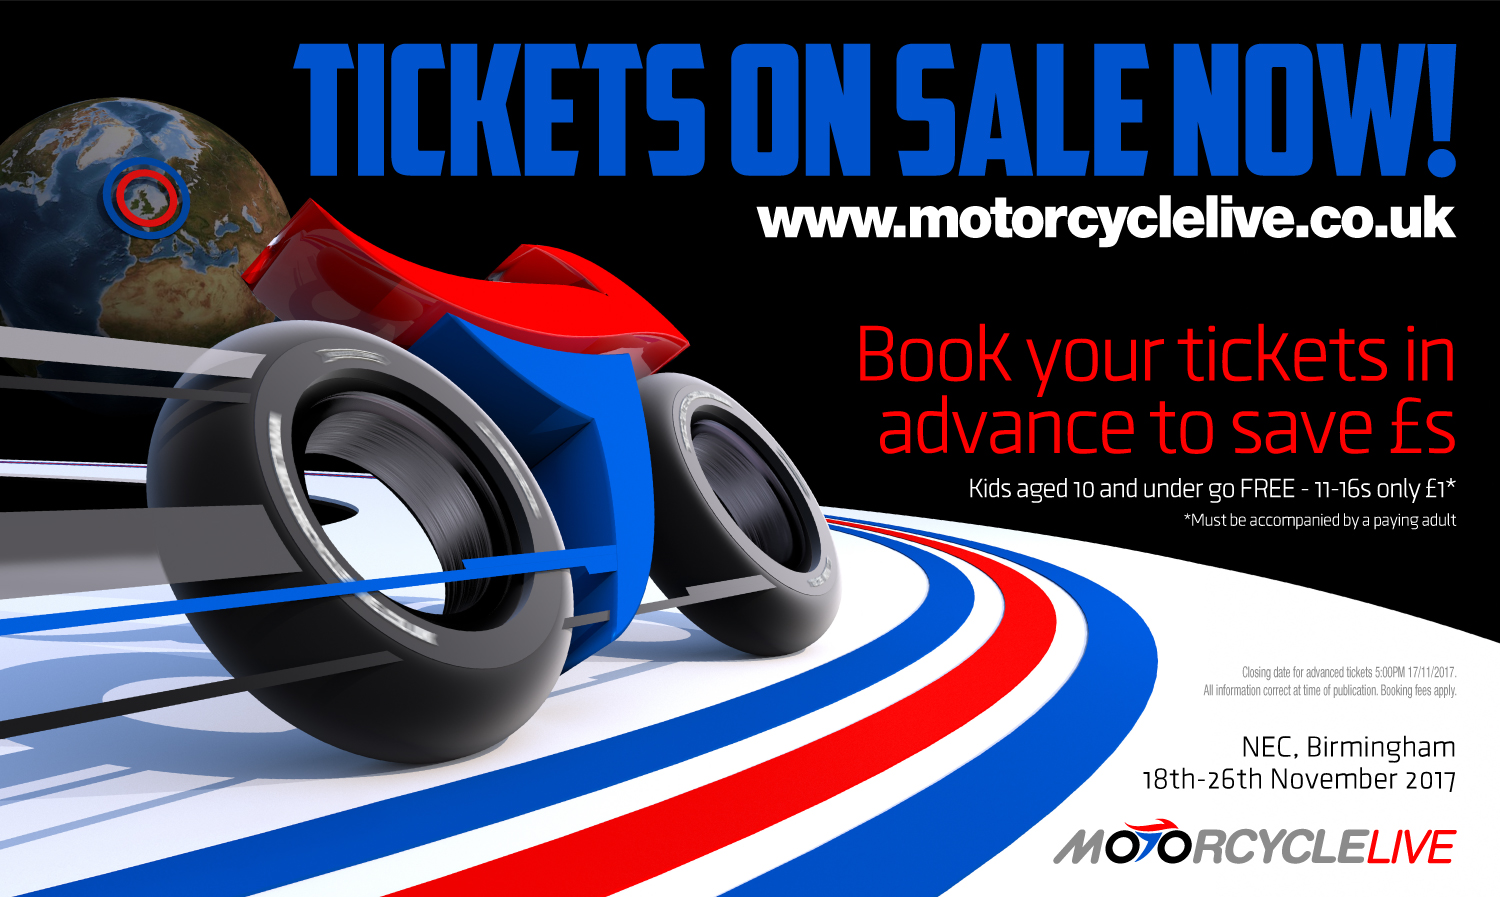 Tickets now on sale for Motorcycle Live